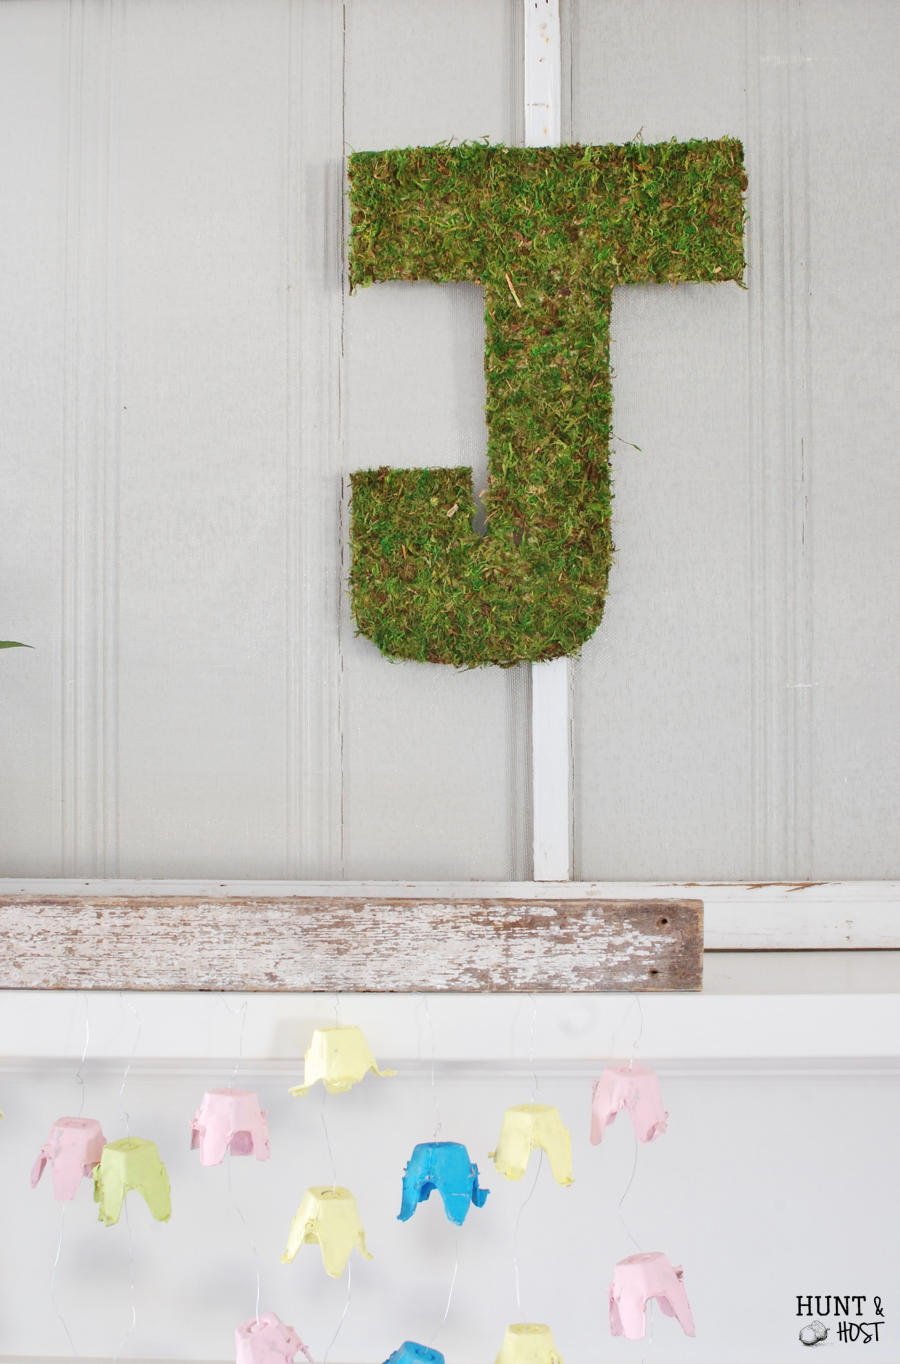 DIY moss letter. The easiest and least expensive idea here!